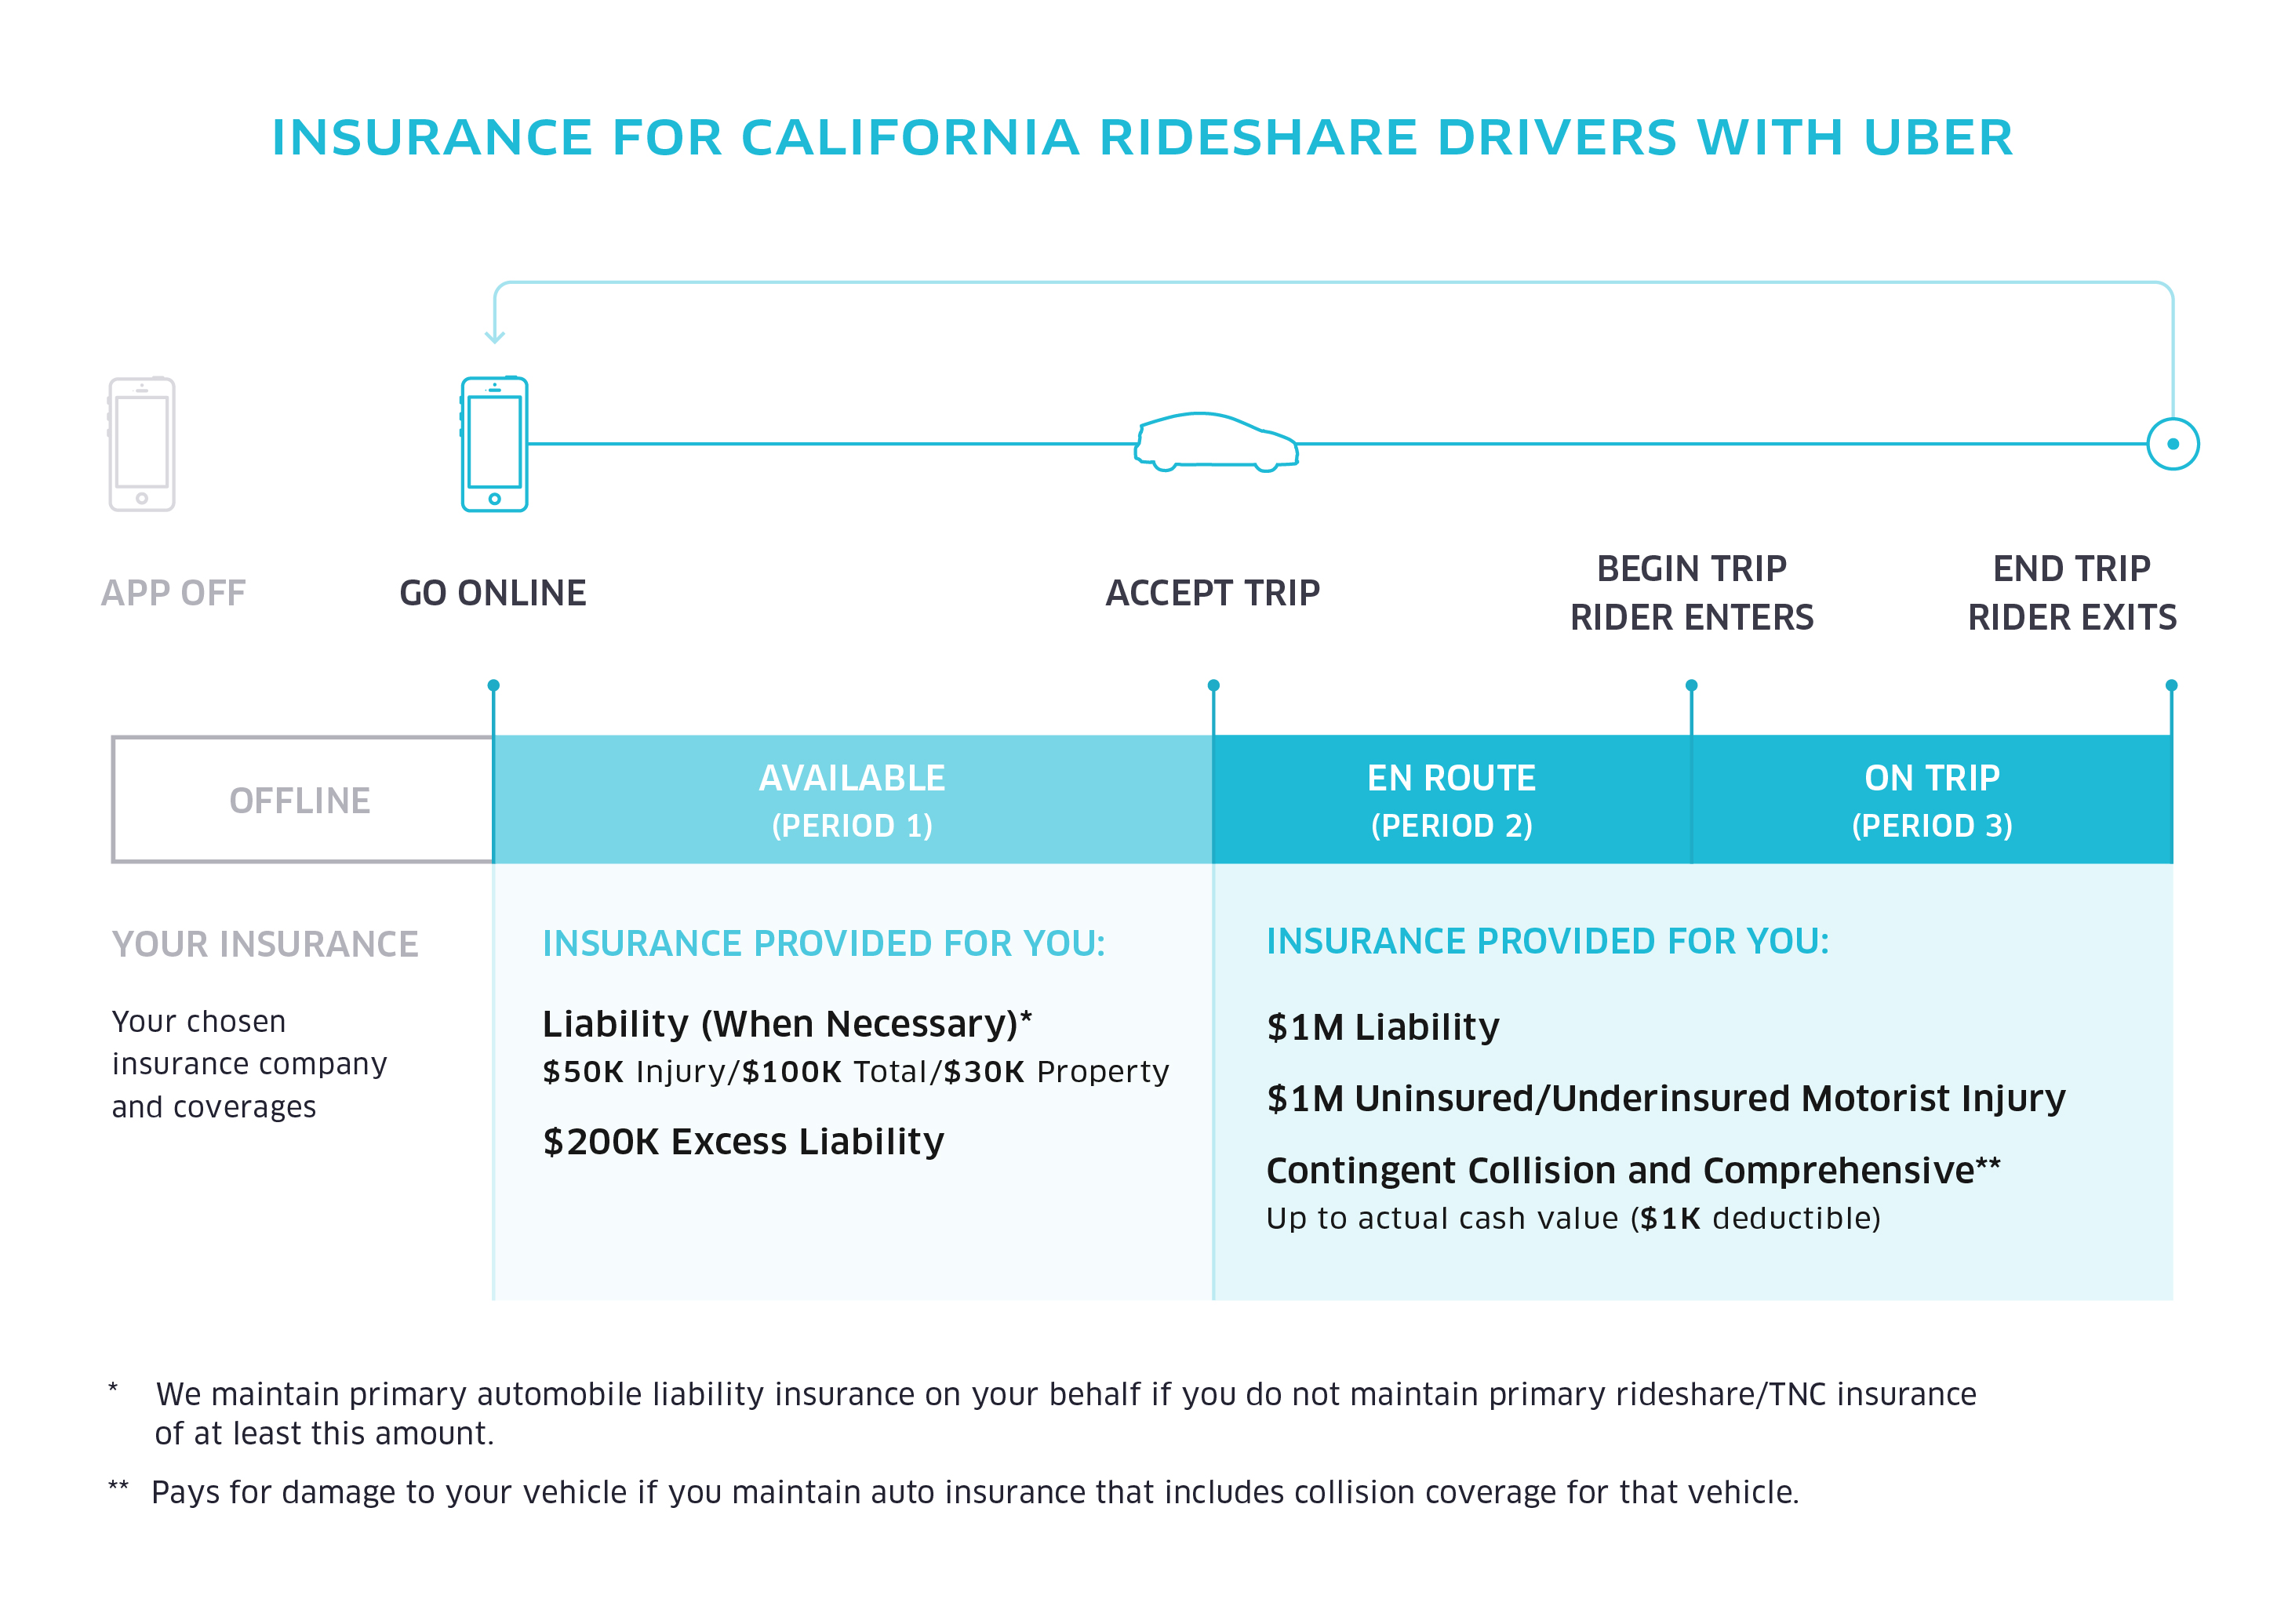 uber_insurance-graphics_700x560_r10_CA Insurance Graphic